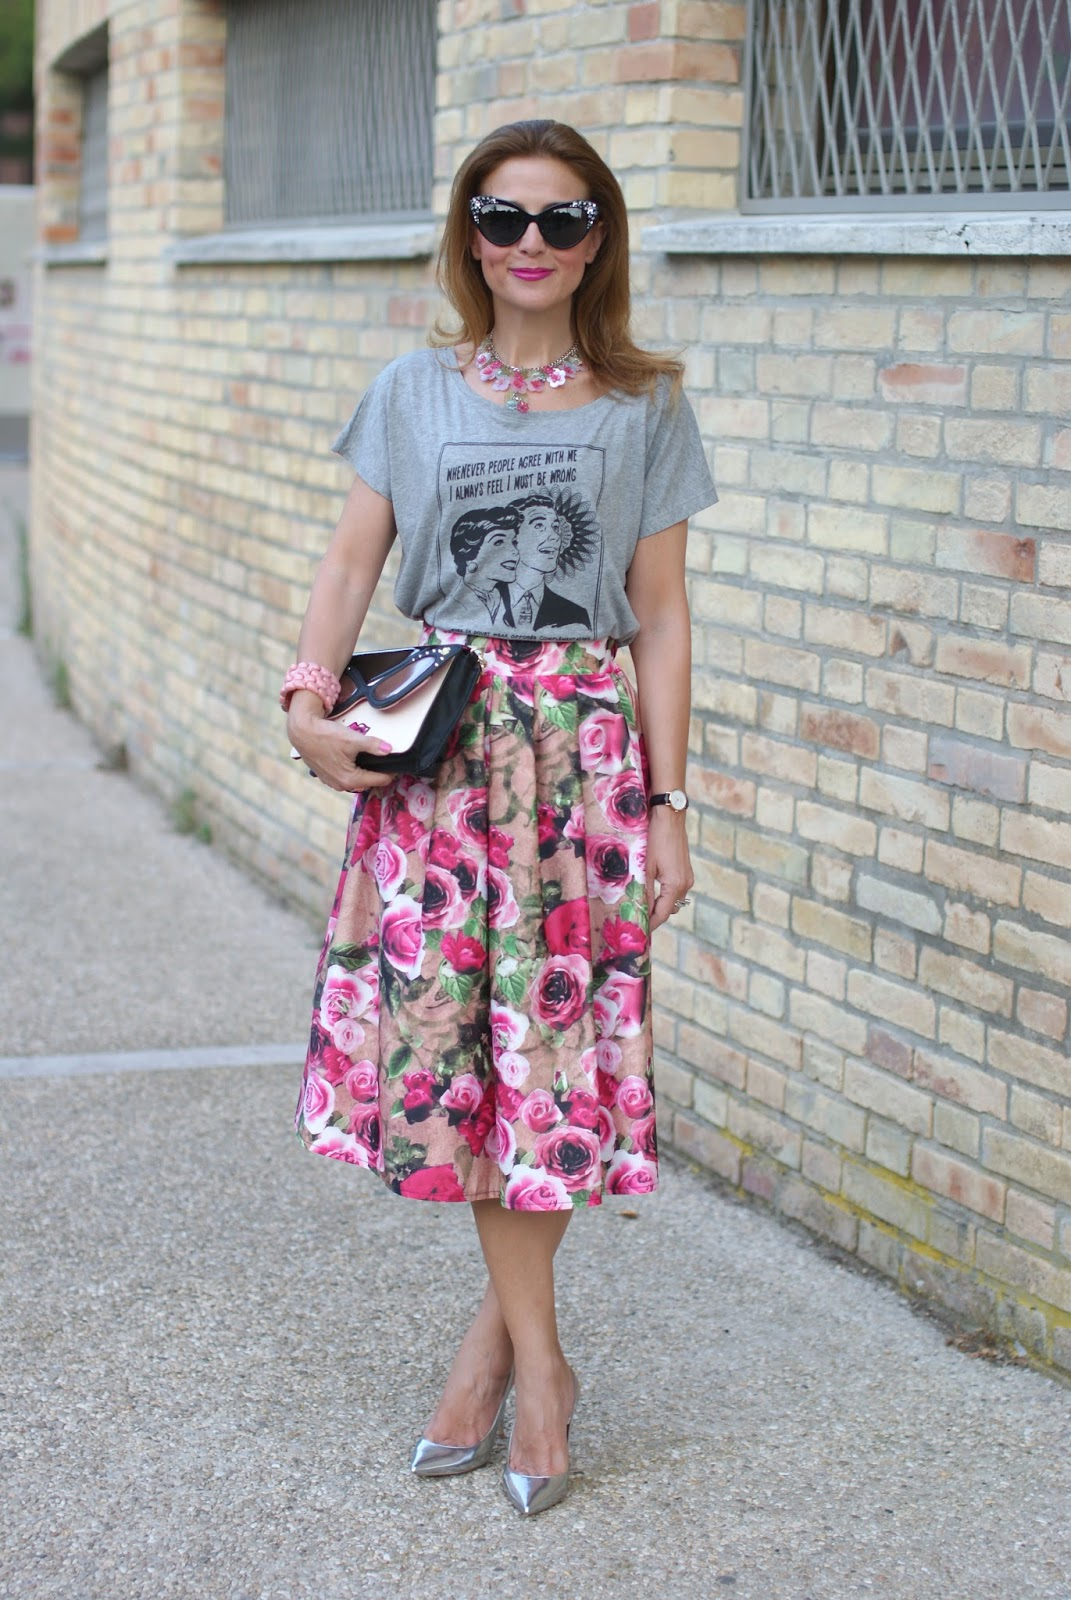 Opposes Complementaires t-shirt con midi skirt con rose e decollete silver Le Silla su Fashion and Cookies fashion blog, fashion blogger style